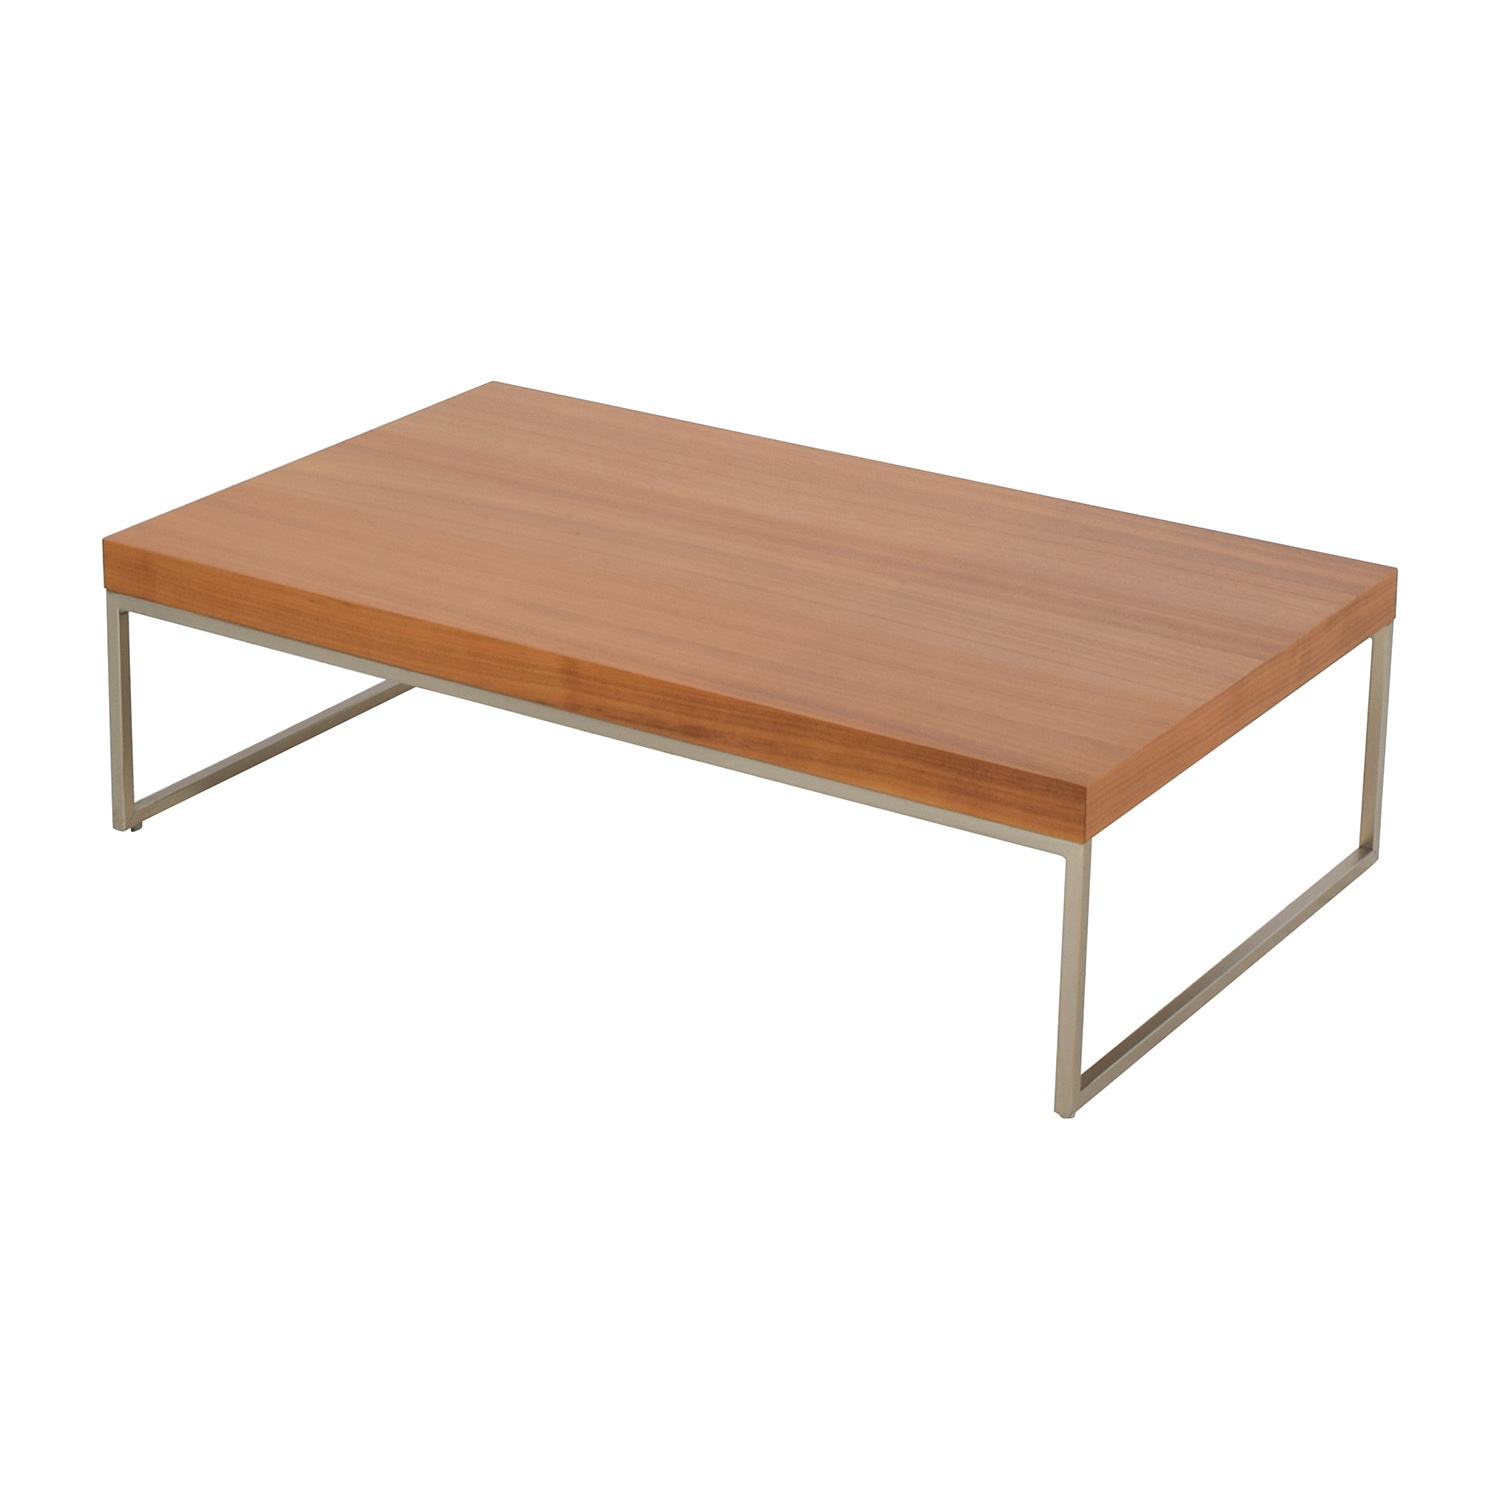 82 off boconcept boconcept lugomatte oak veneer coffee table tables - Tafel boconcept ...